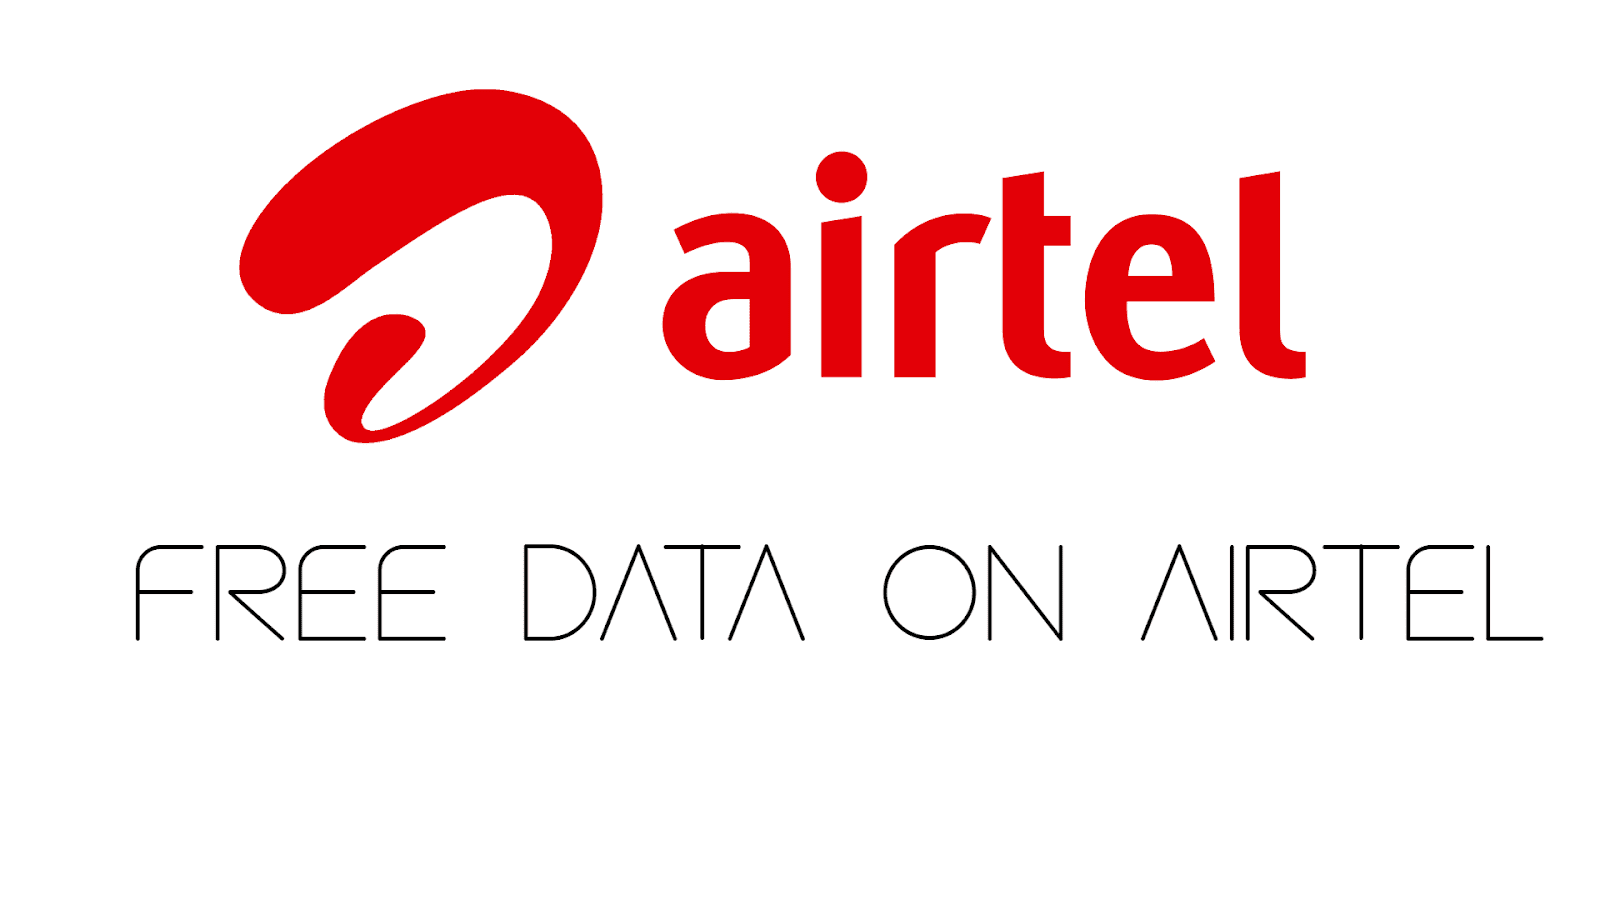 airtel free internet,airtel free data,airtel free data offer,airtel free data code number,airtel free internet trick,airtel free internet 2019,airtel free internet trick 2019,airtel free net 2019,how to get airtel free data,airtel free net,airtel free net code,airtel free internet code,how to get free internet,airtel new free data offer,how to get free internet on airtel sim